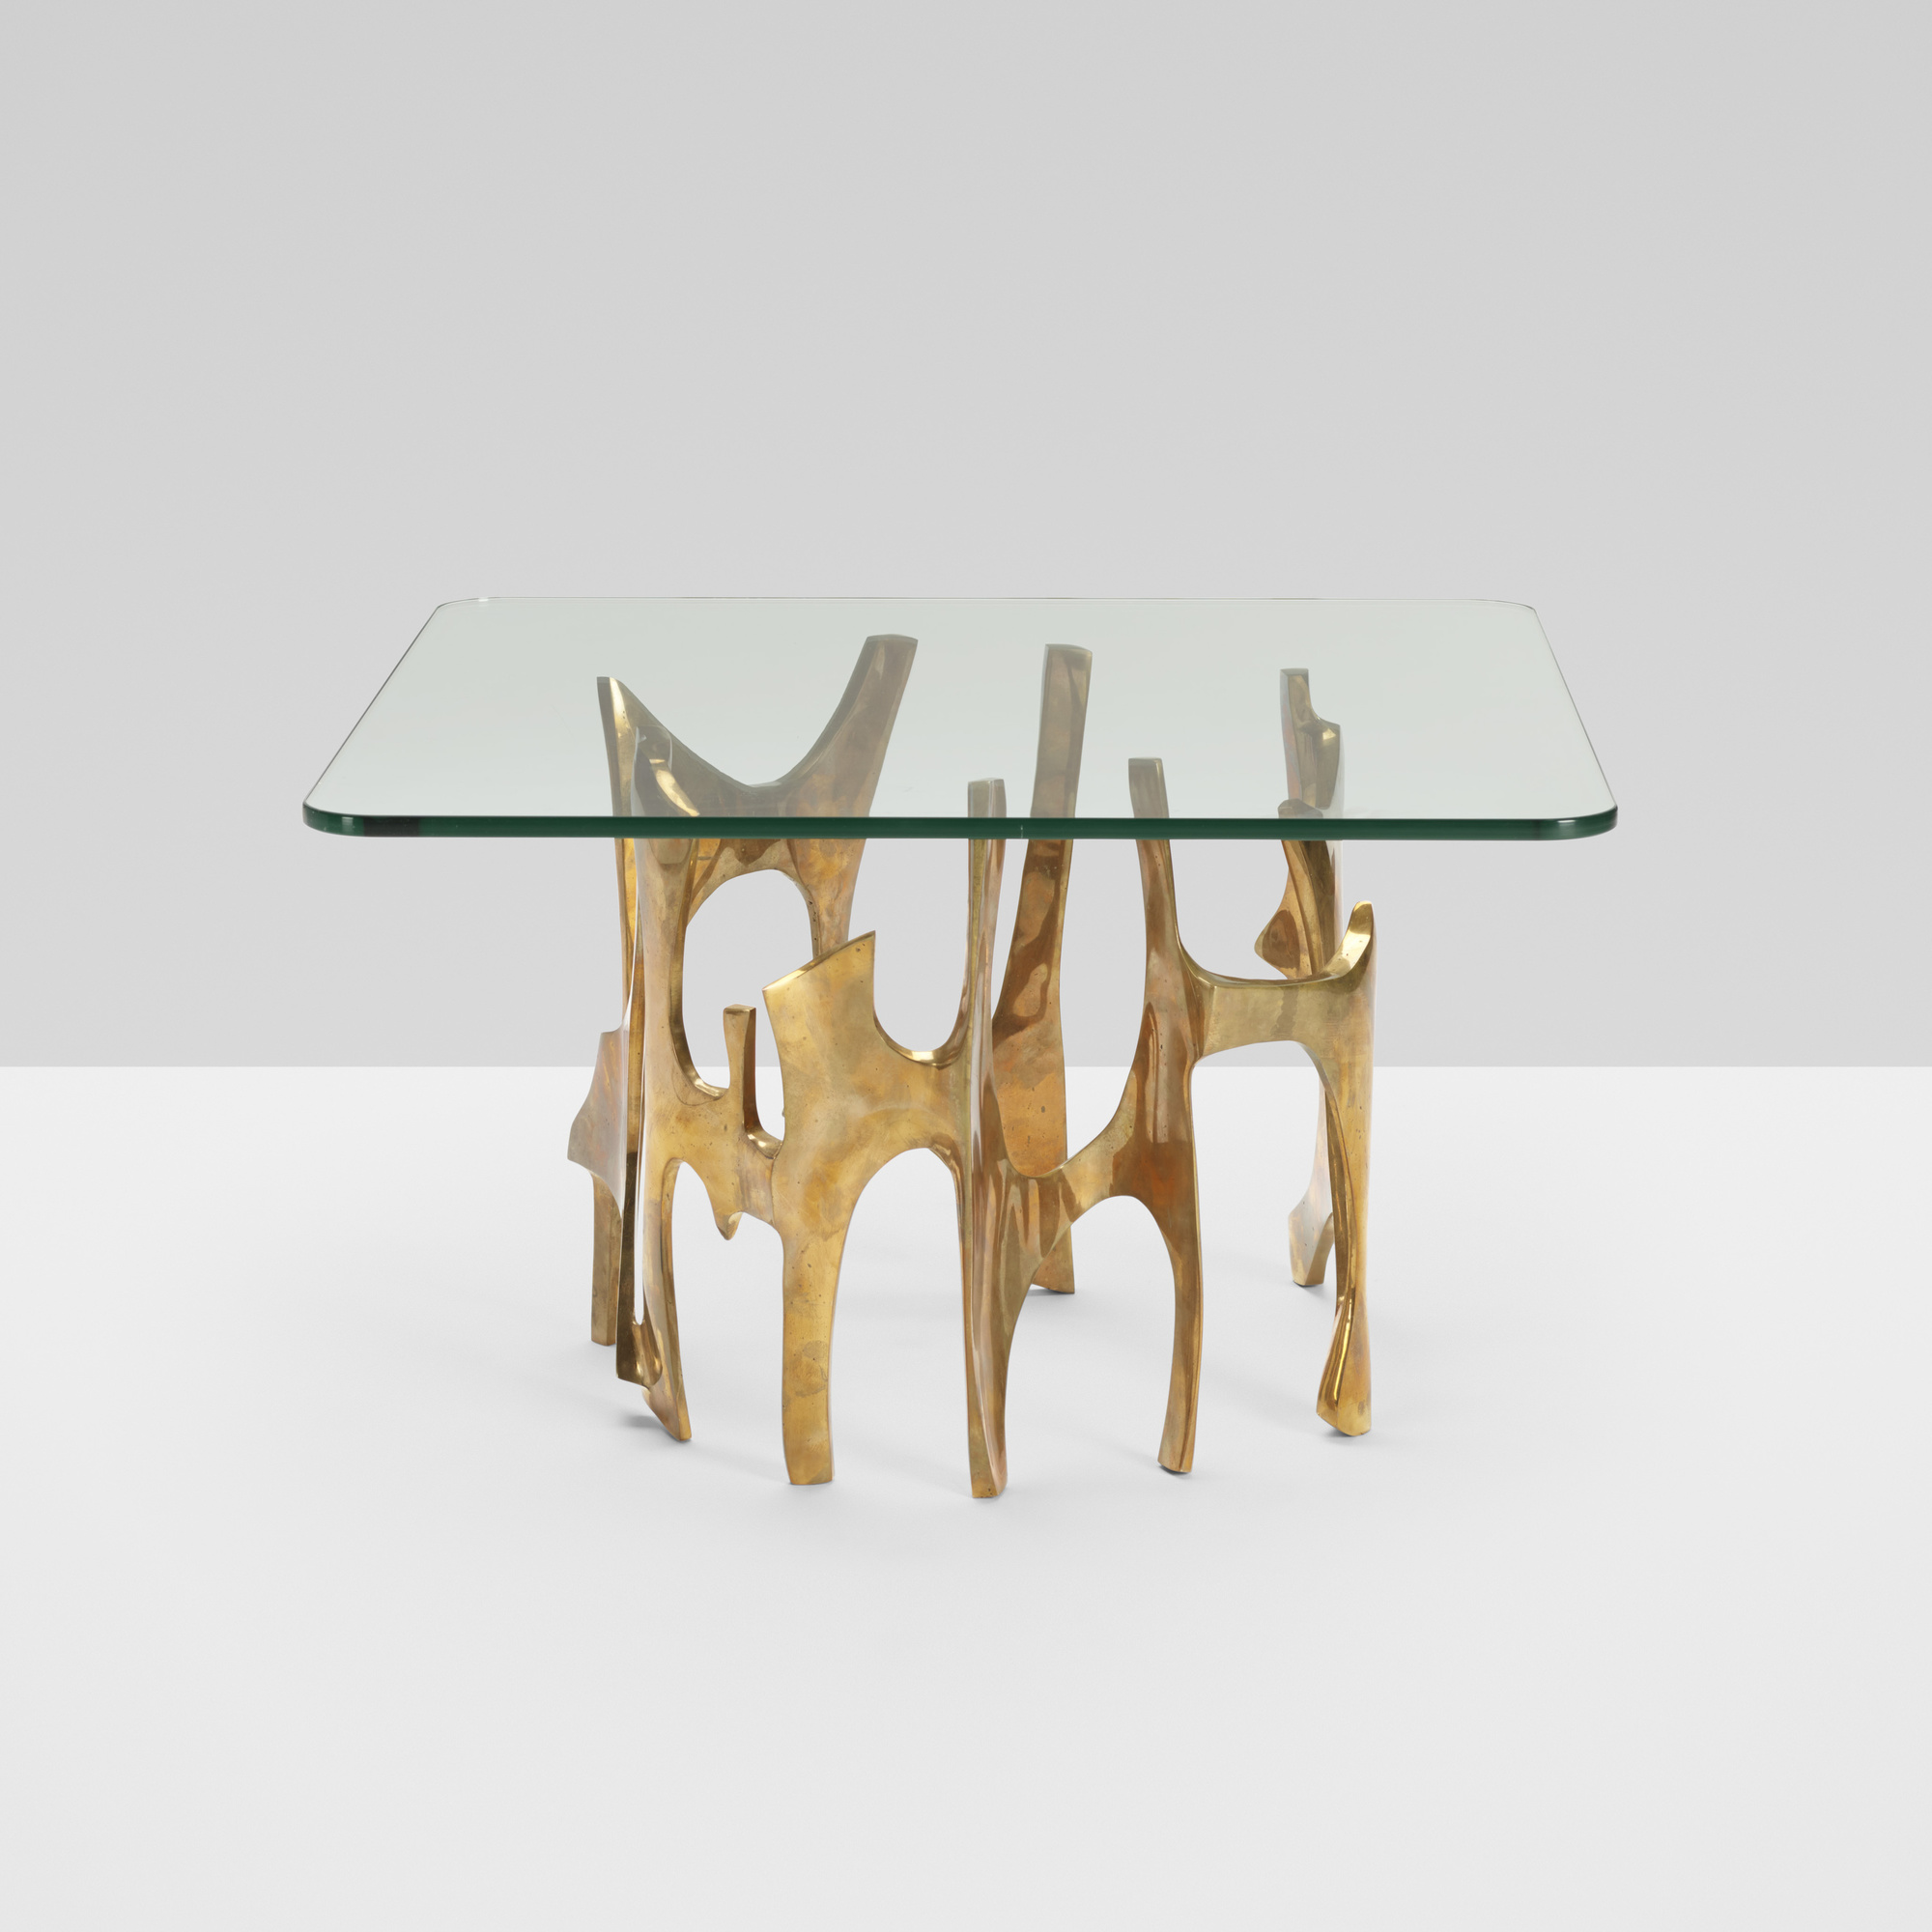 302: Fred Brouard / coffee table (1 of 3)